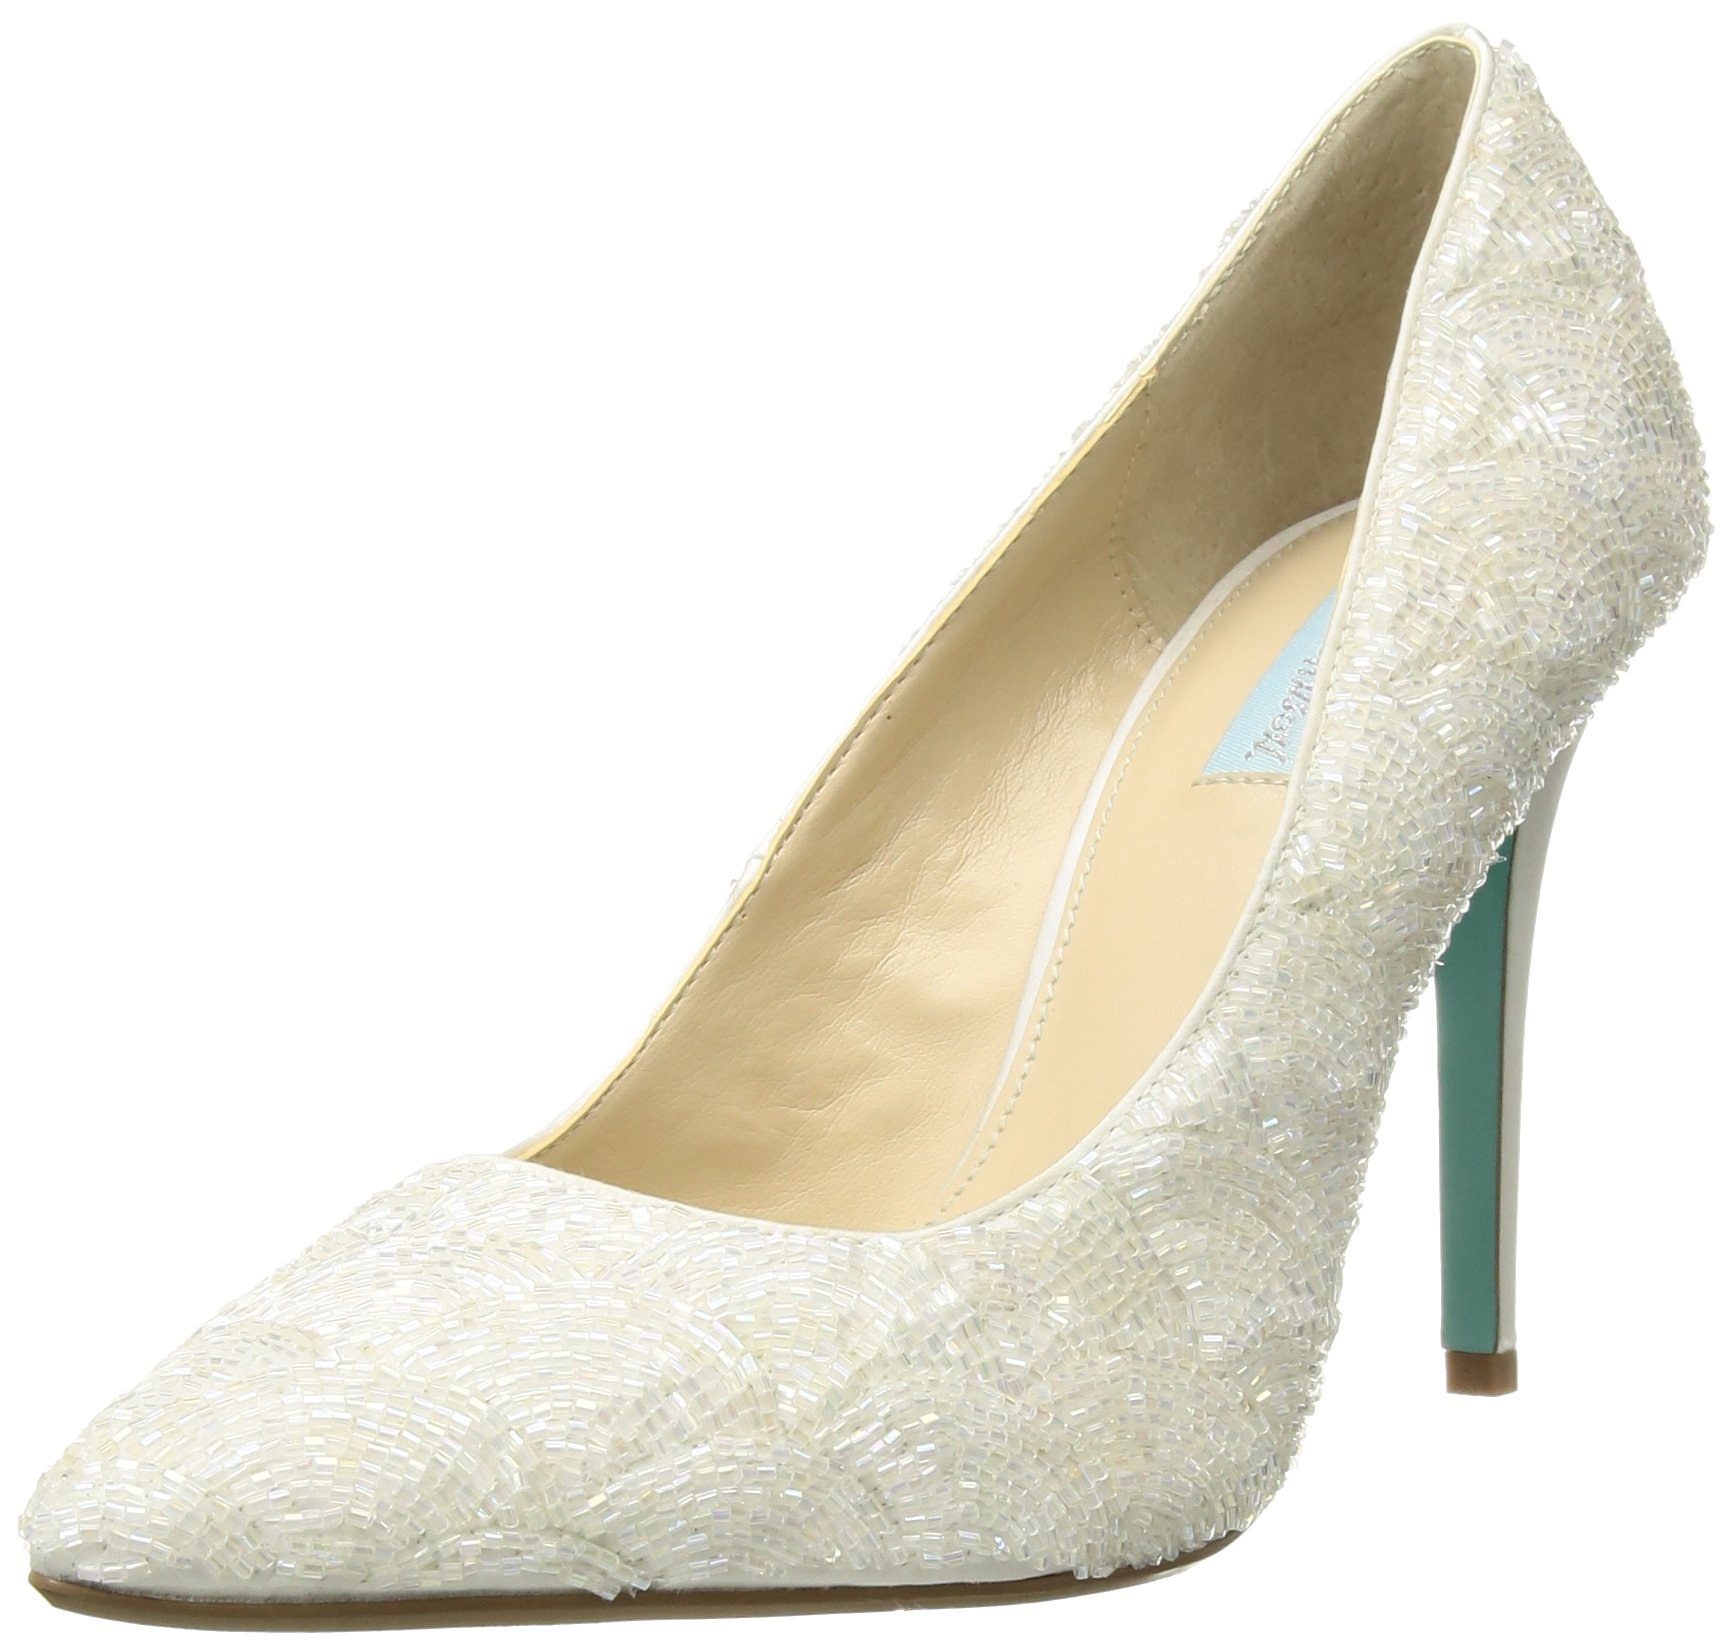 Blue by Betsey Johnson Women's SB-Clair Pump, Ivory Satin, 10 M US